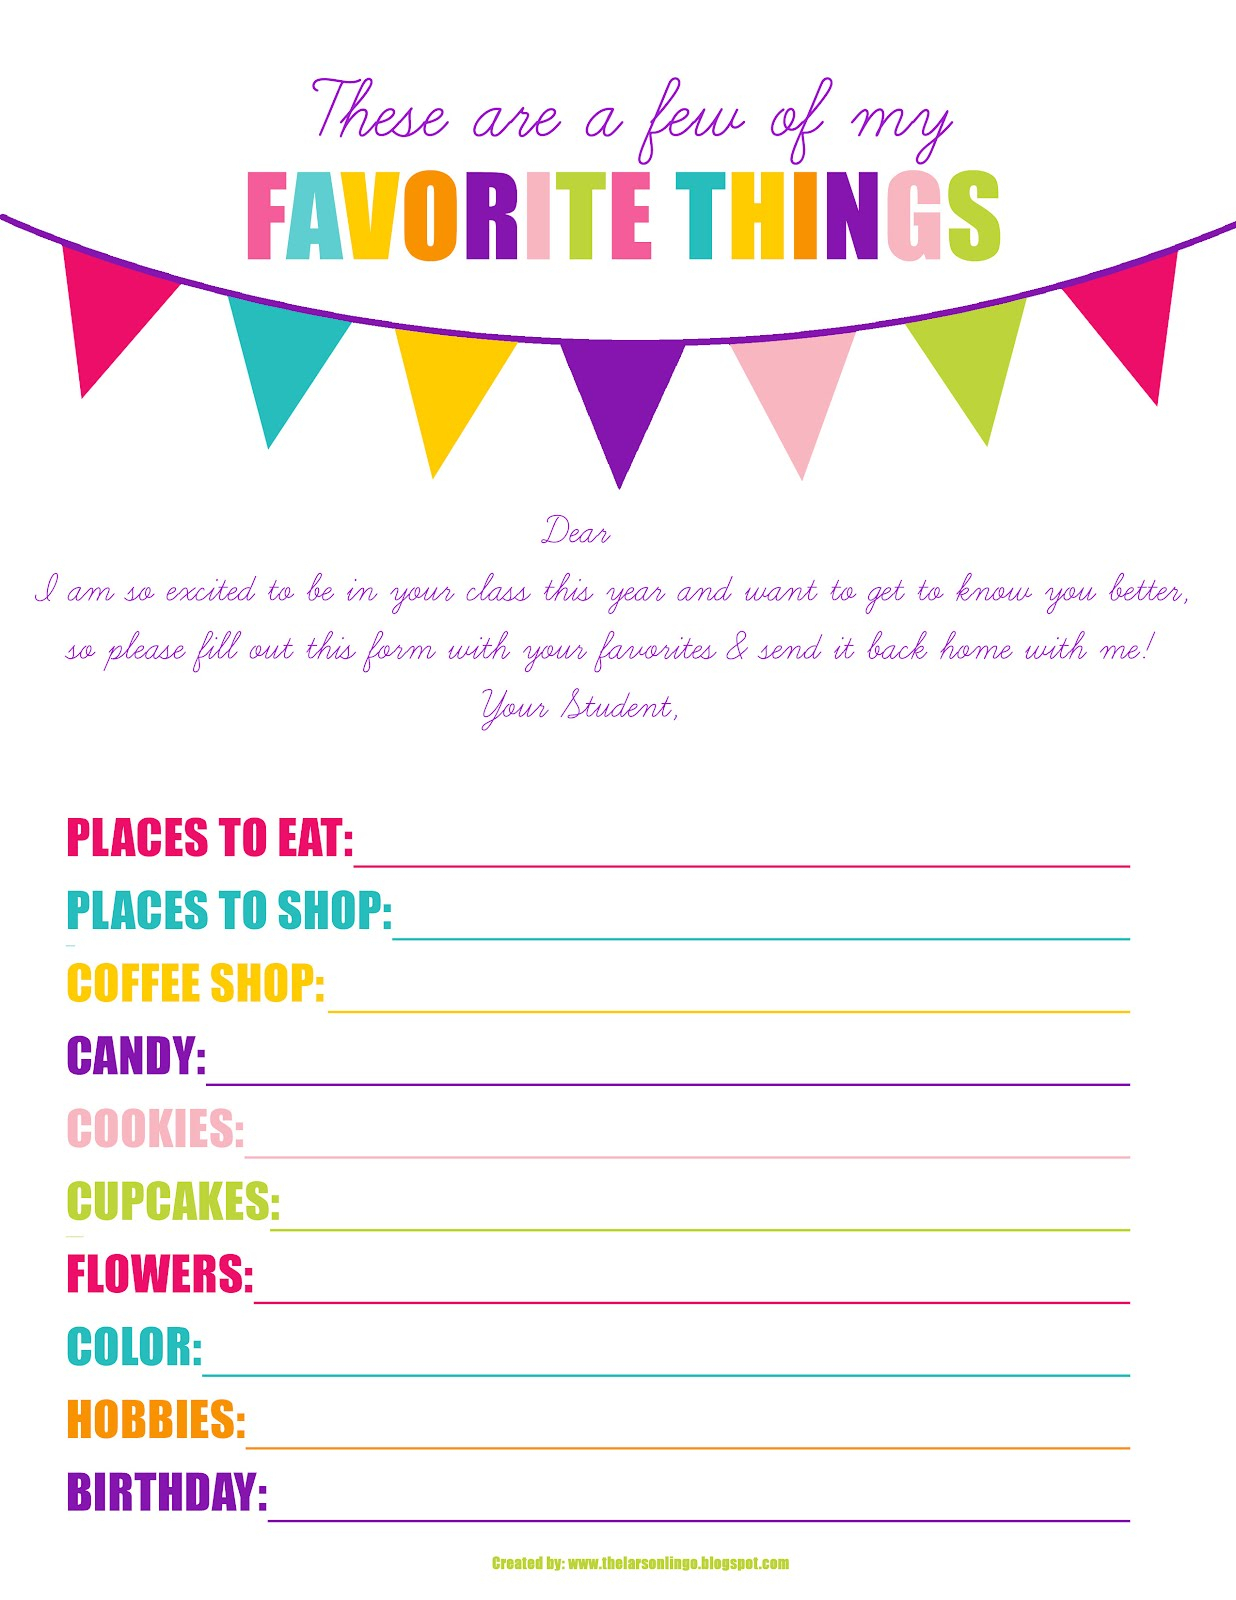 29 Images Of My Favorite Things Template | Helmettown with regard to A Few Of My Favorite Things Template